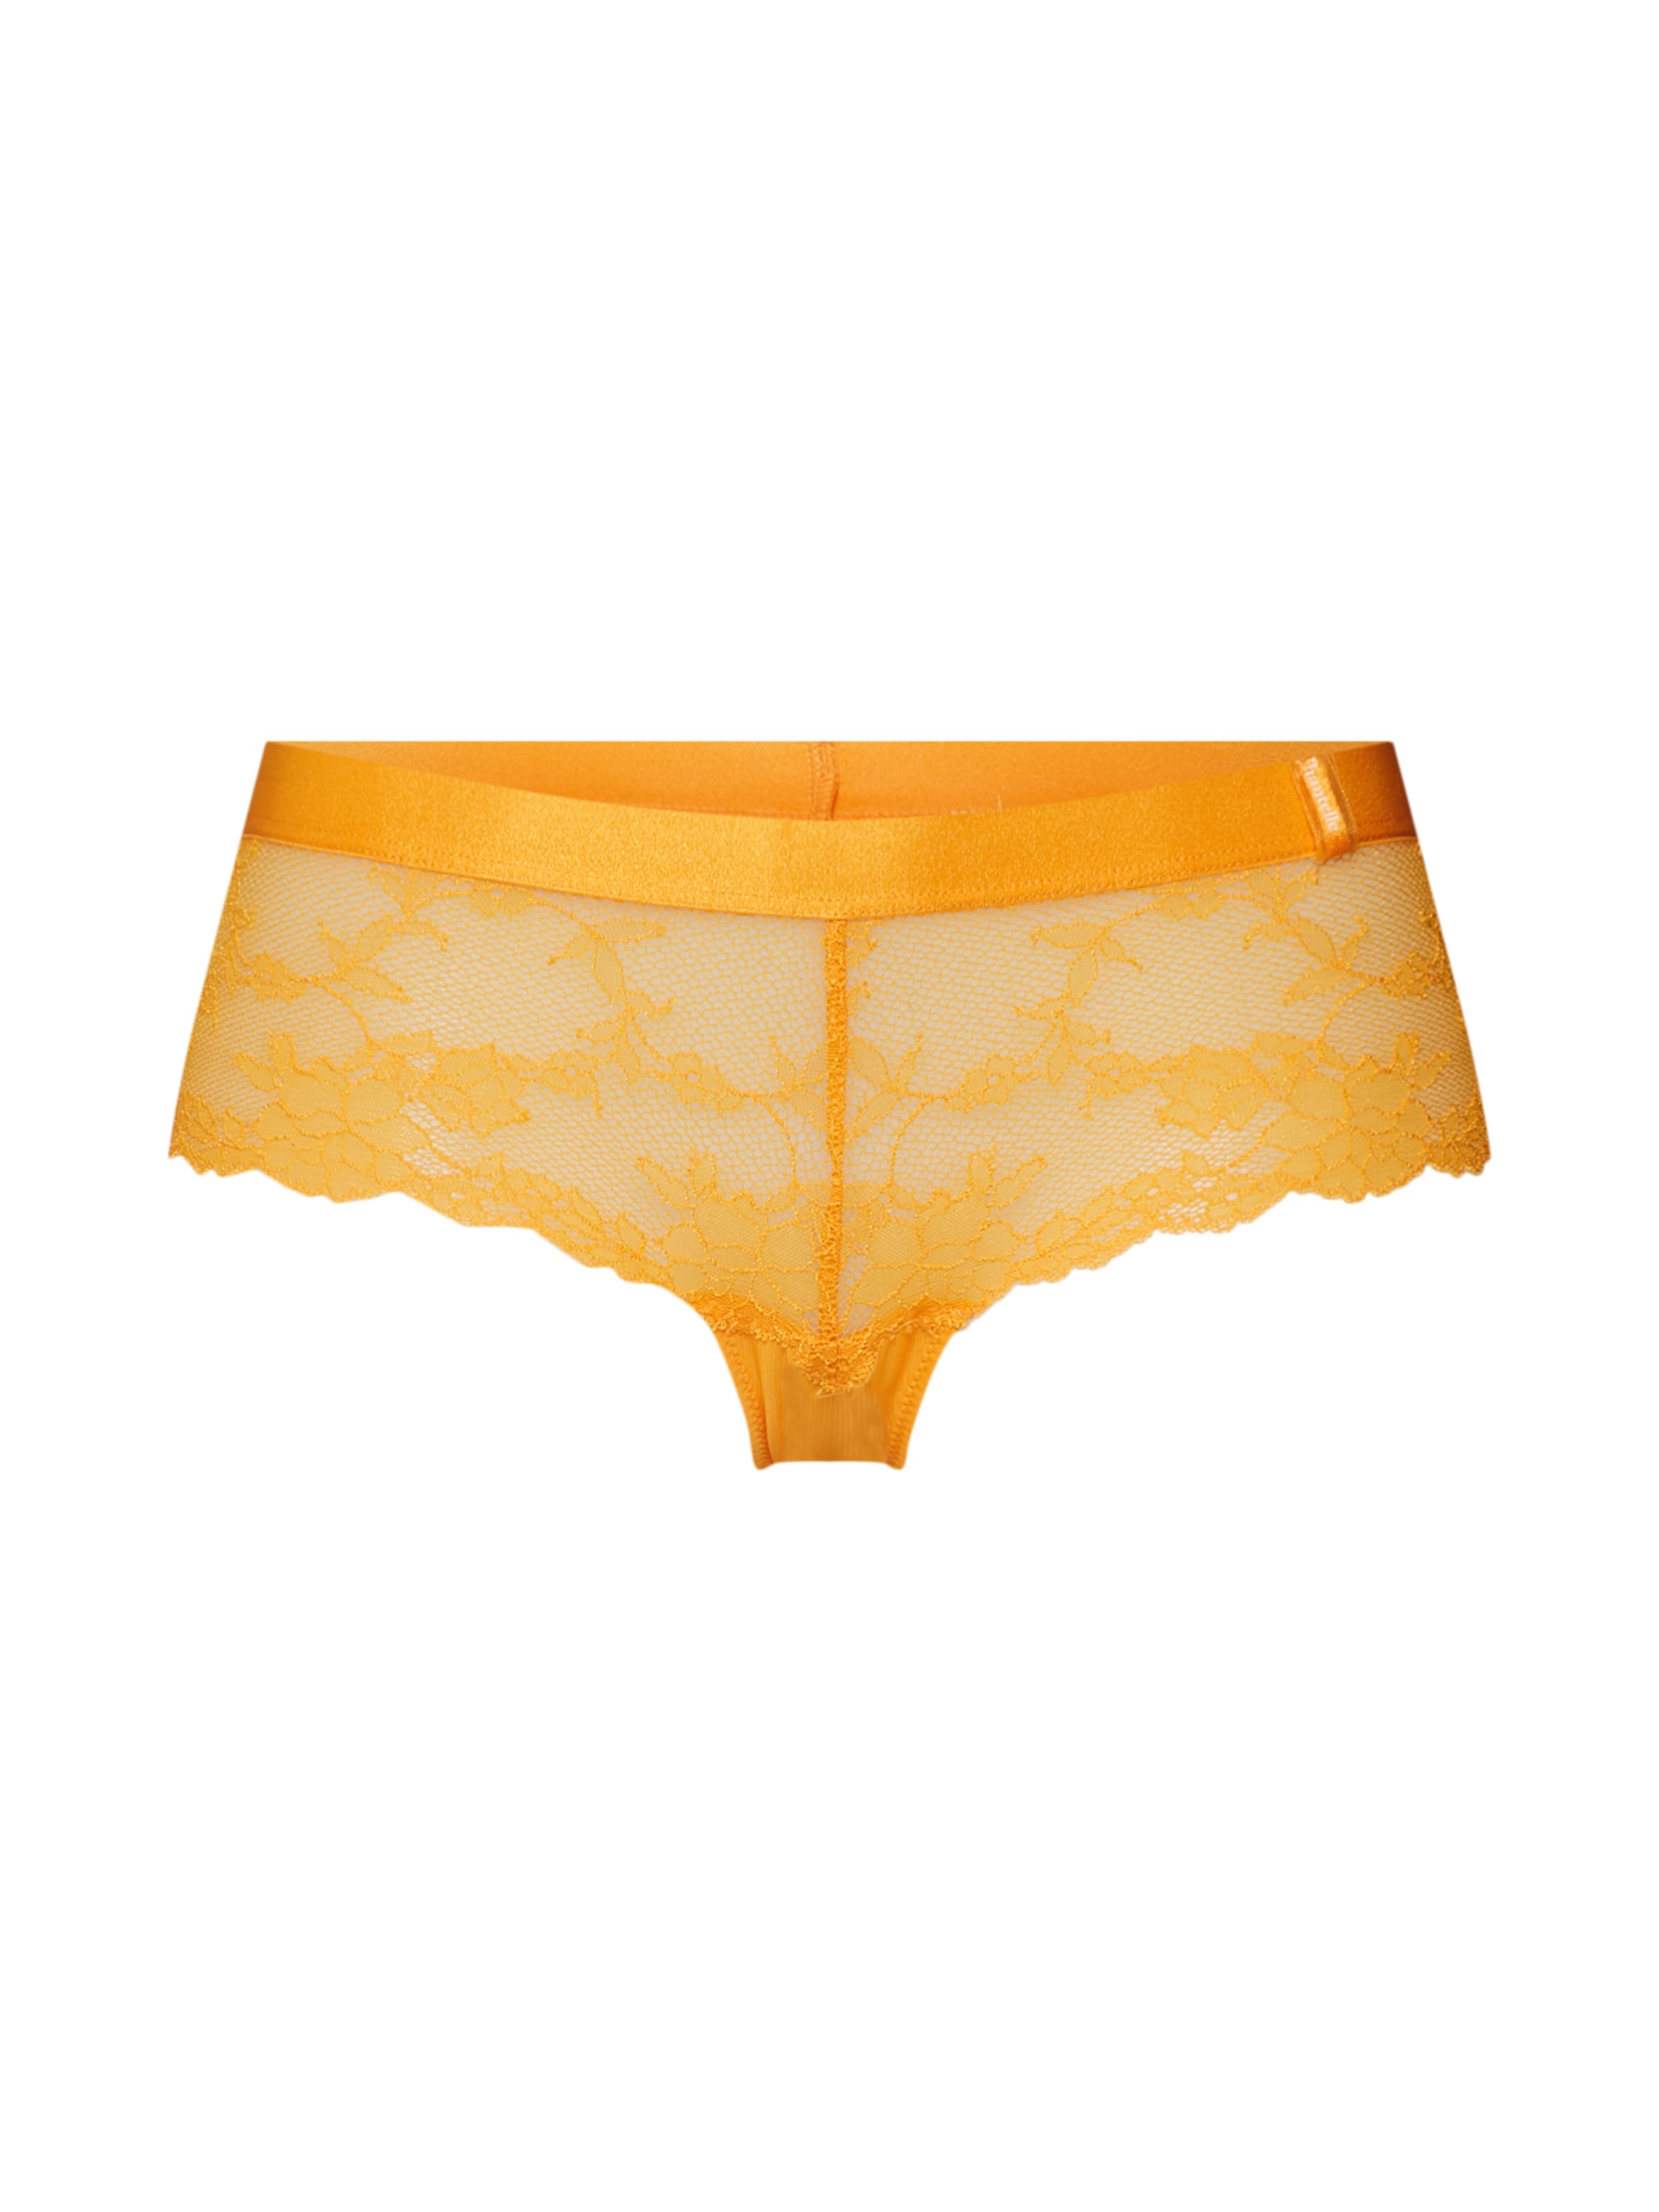 D'or 'everyday En Lace' Chantelle Jaune Culotte K1JclF